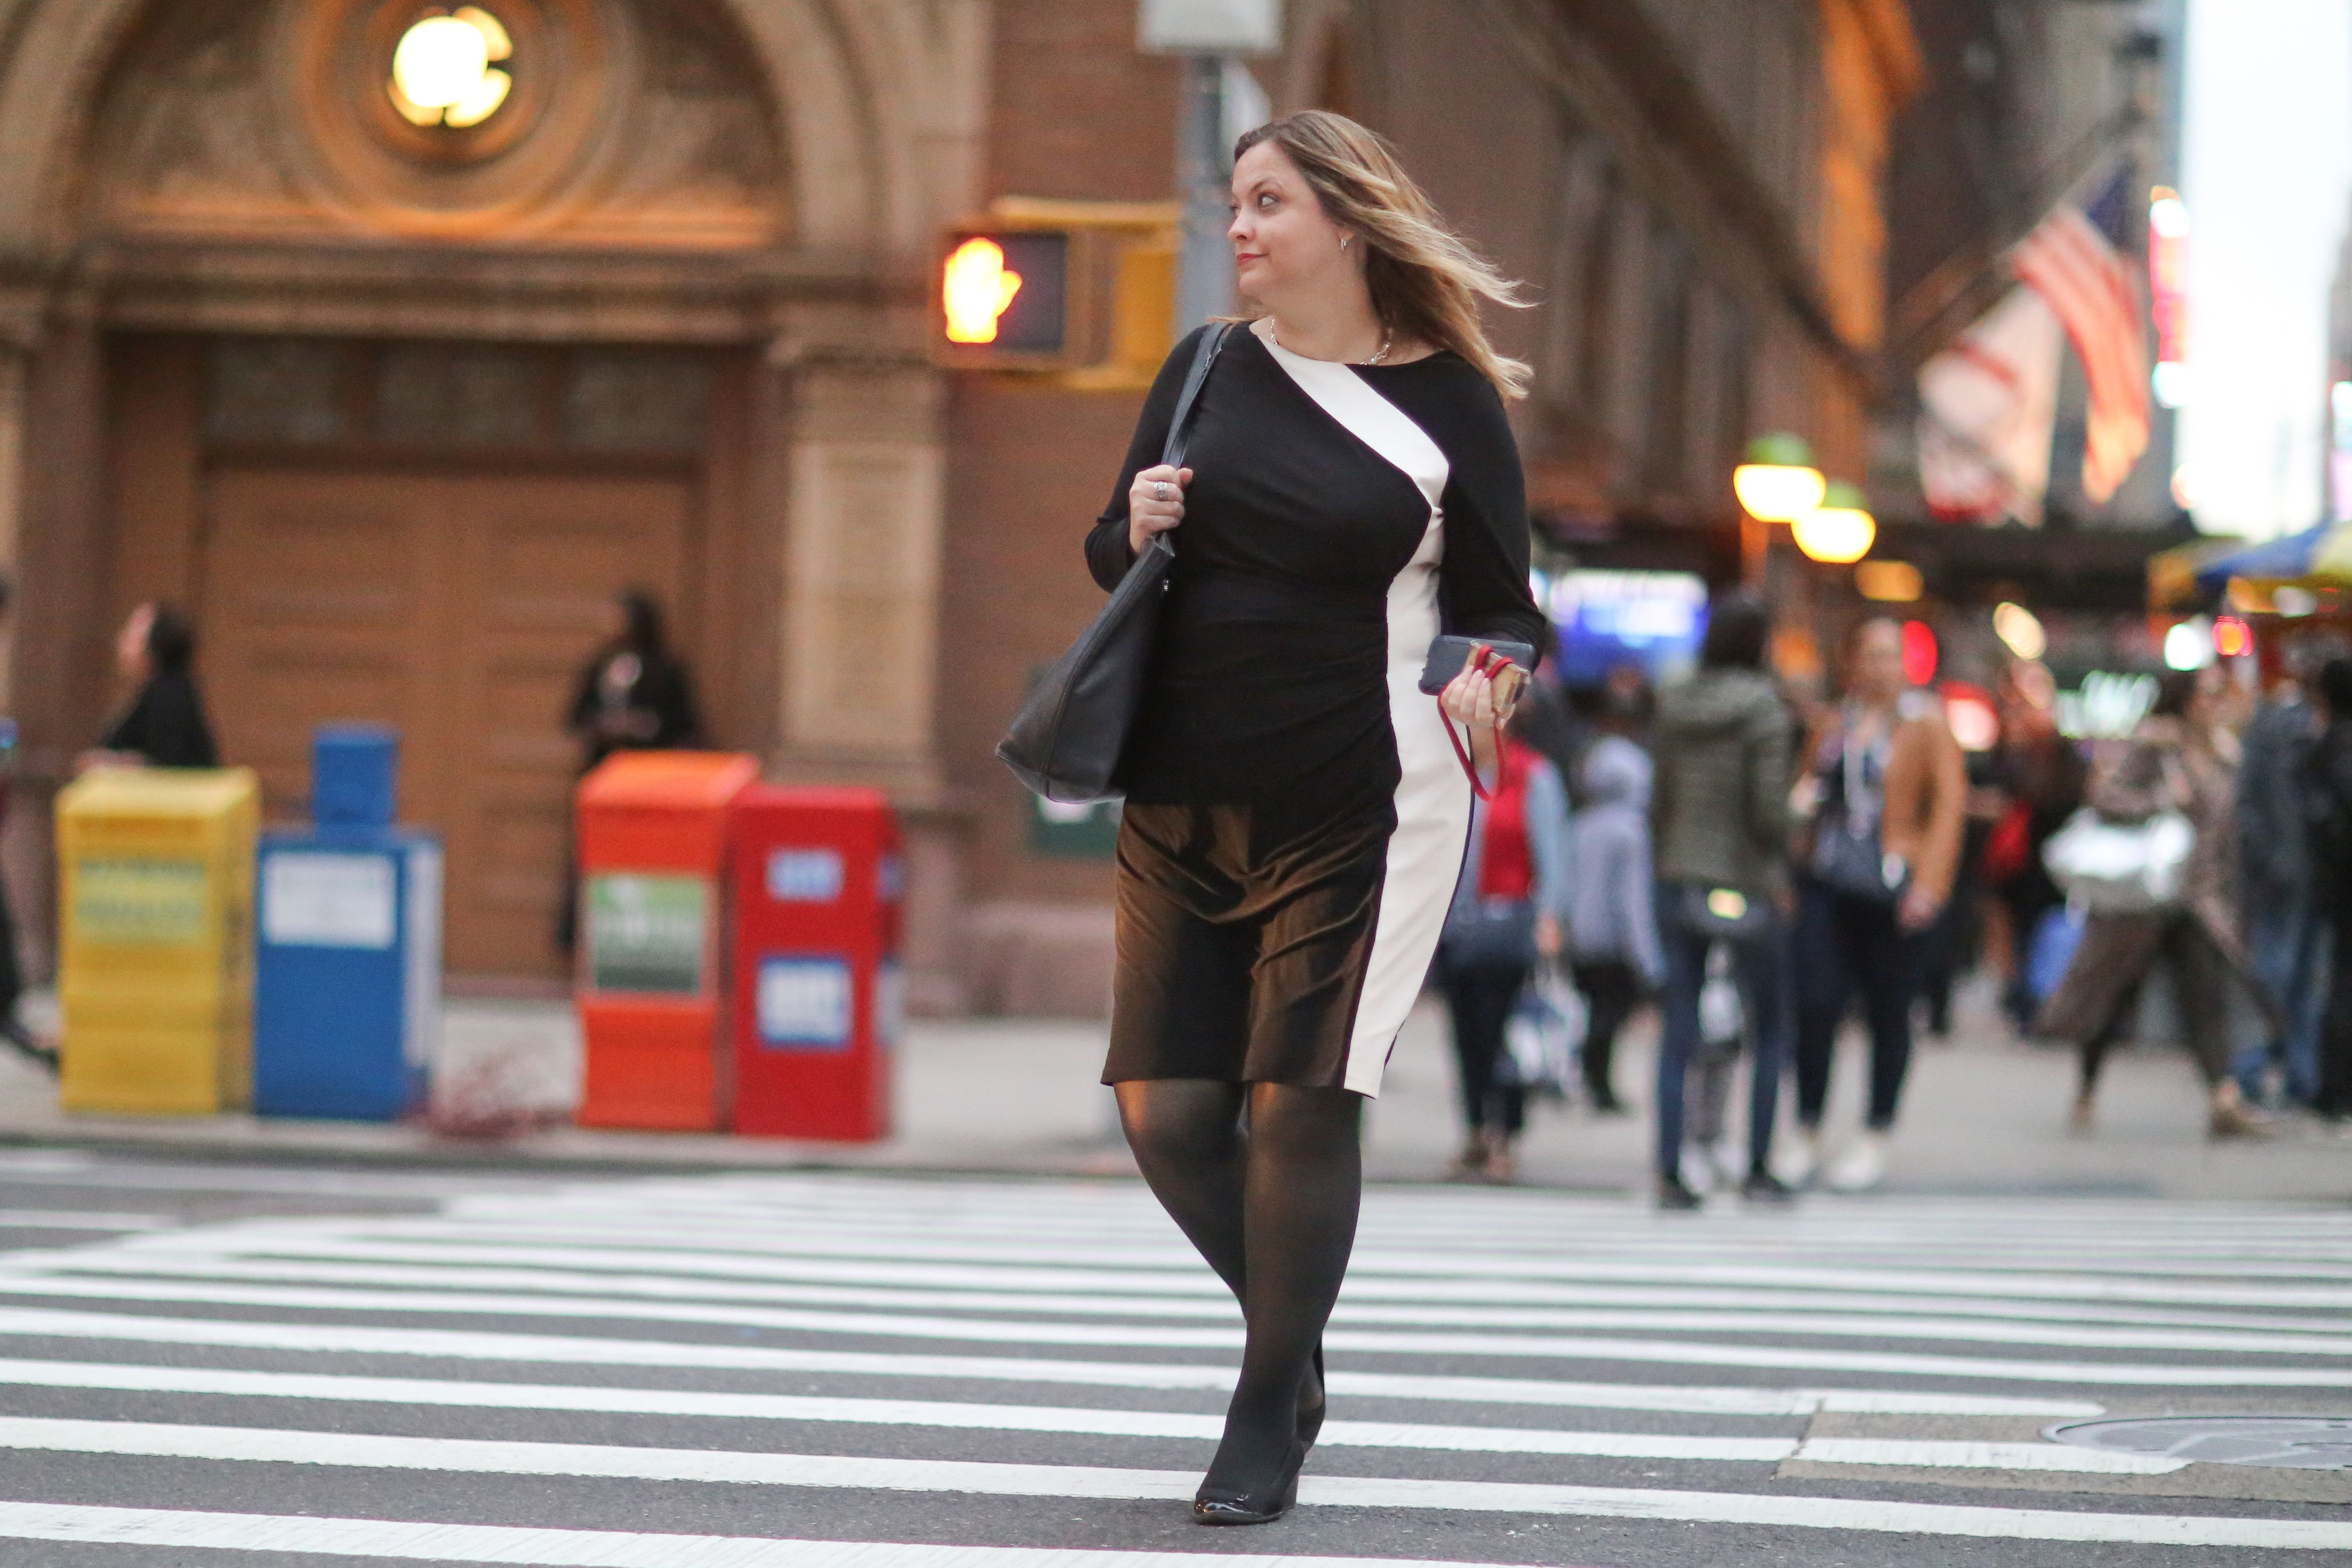 57th Street A Woman Crossing At 7th Avenue In The Early Evening When Cars Begin Using Headlights Nyc Newyorkcity Manhattan Stockings